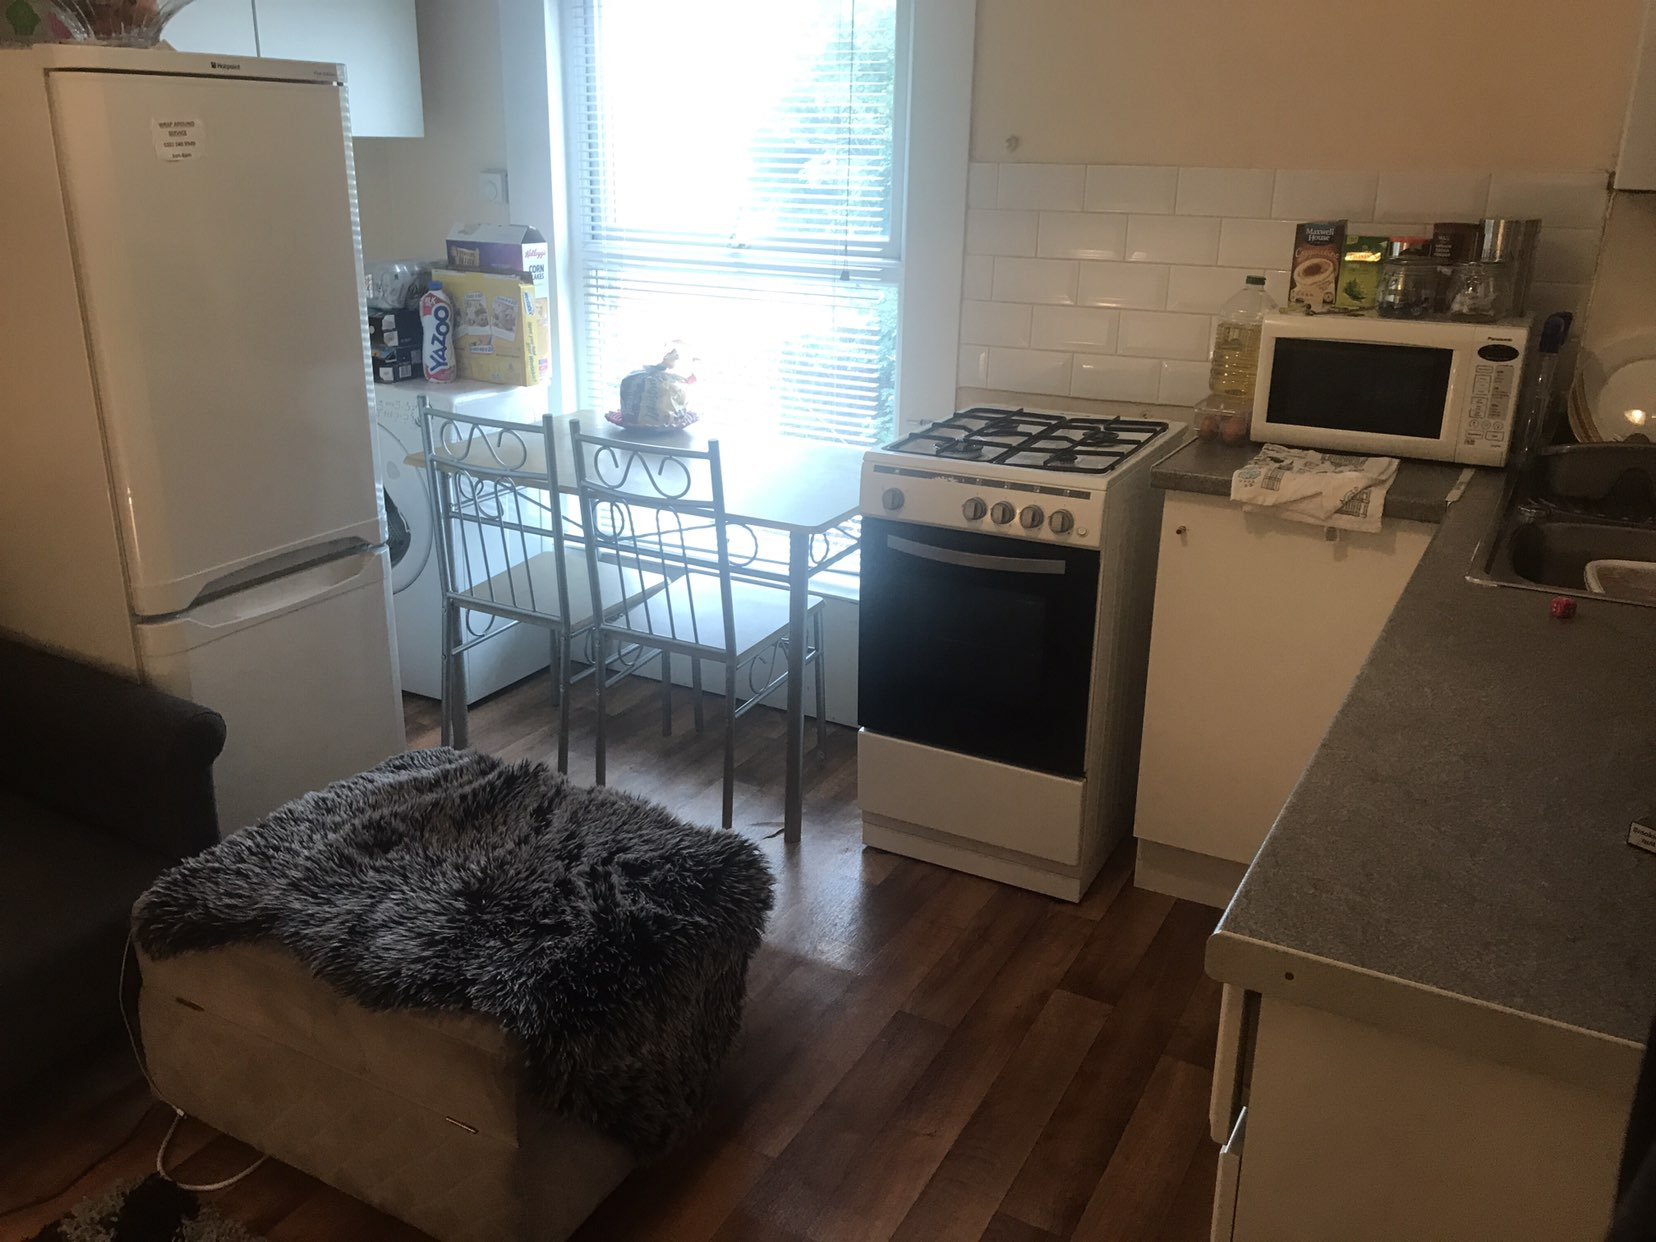 1 room in Plaistow South, London, E13 8QE RoomsLocal image